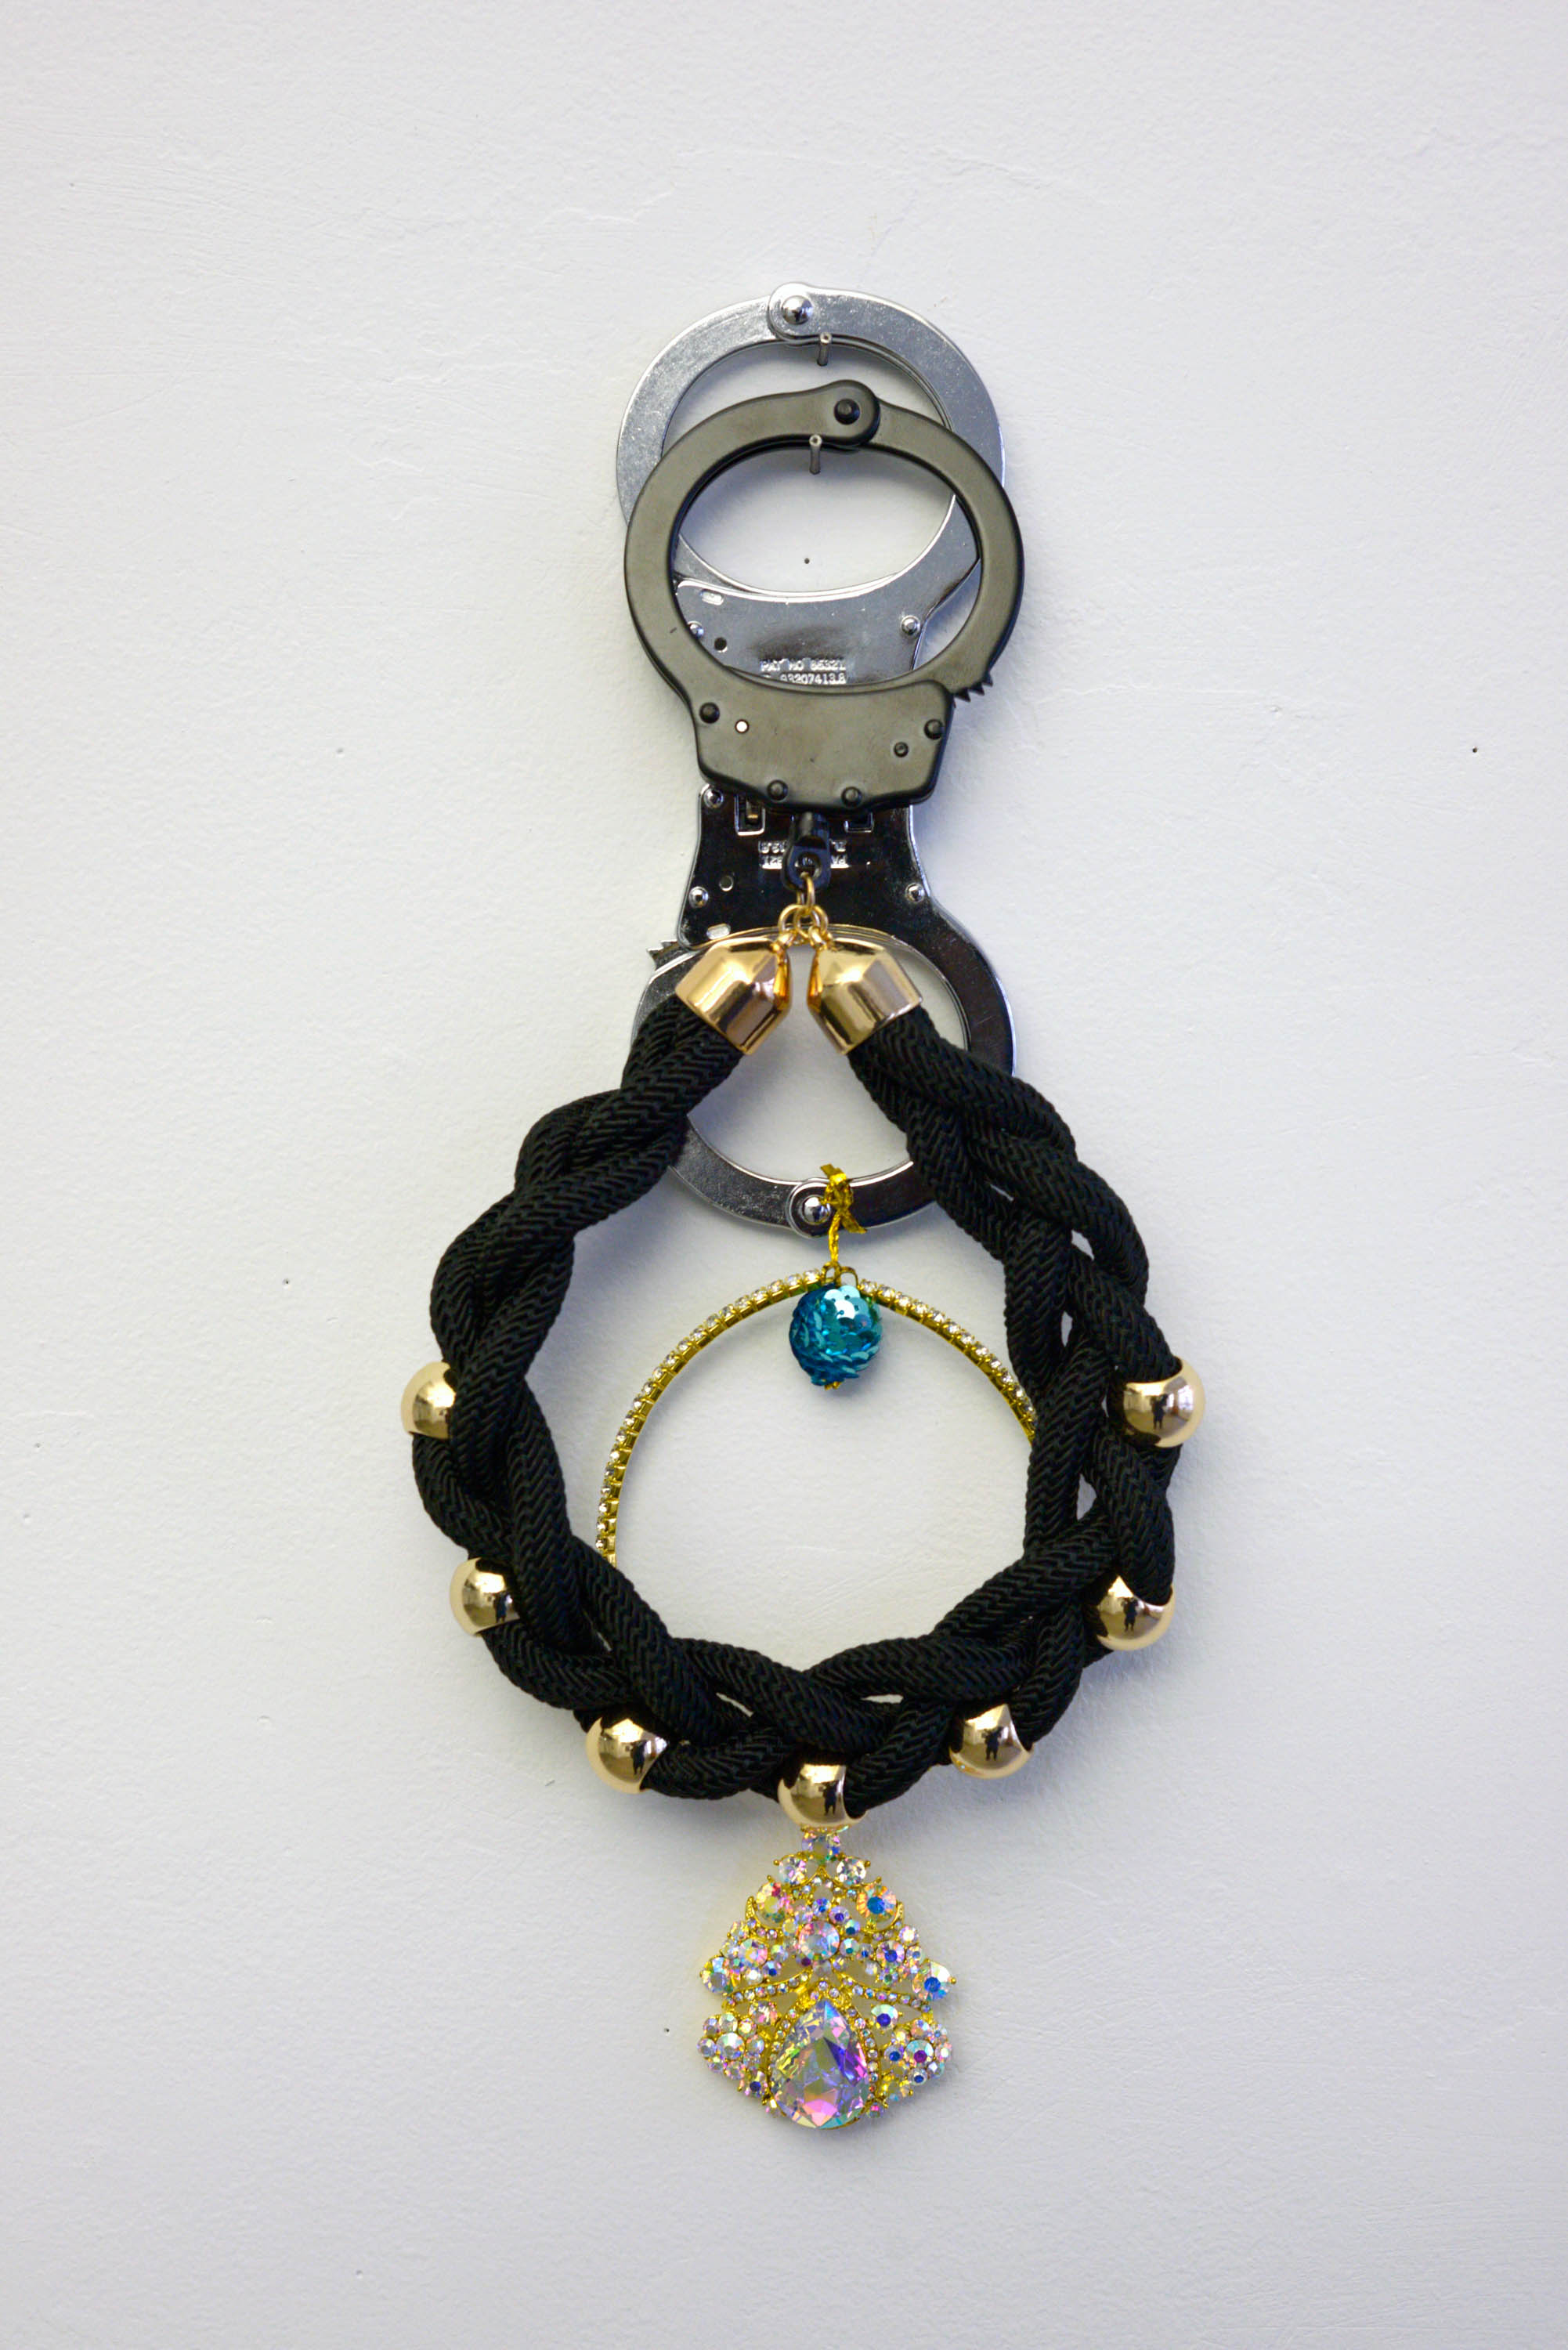 Kambui Olujimi,<em> Stowaway</em>, from the series <em>Killing Time</em>, 2017. 4 single handcuffs, costume jewelry. Variable dimensions. Courtesy of artist.